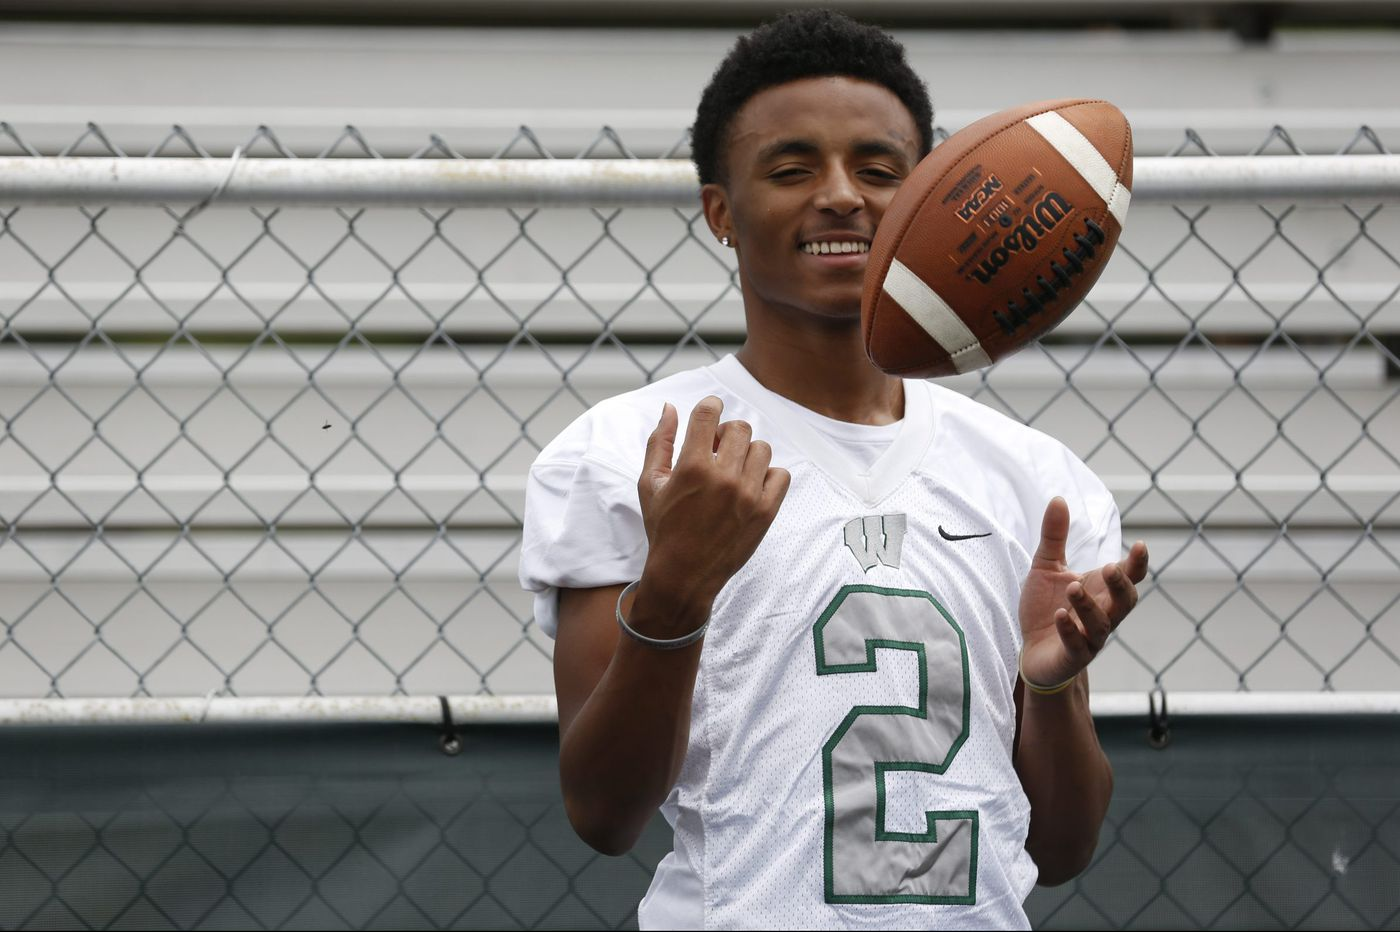 Rutgers recruit Donovan Bunch of Winslow Township is following in his father's footsteps